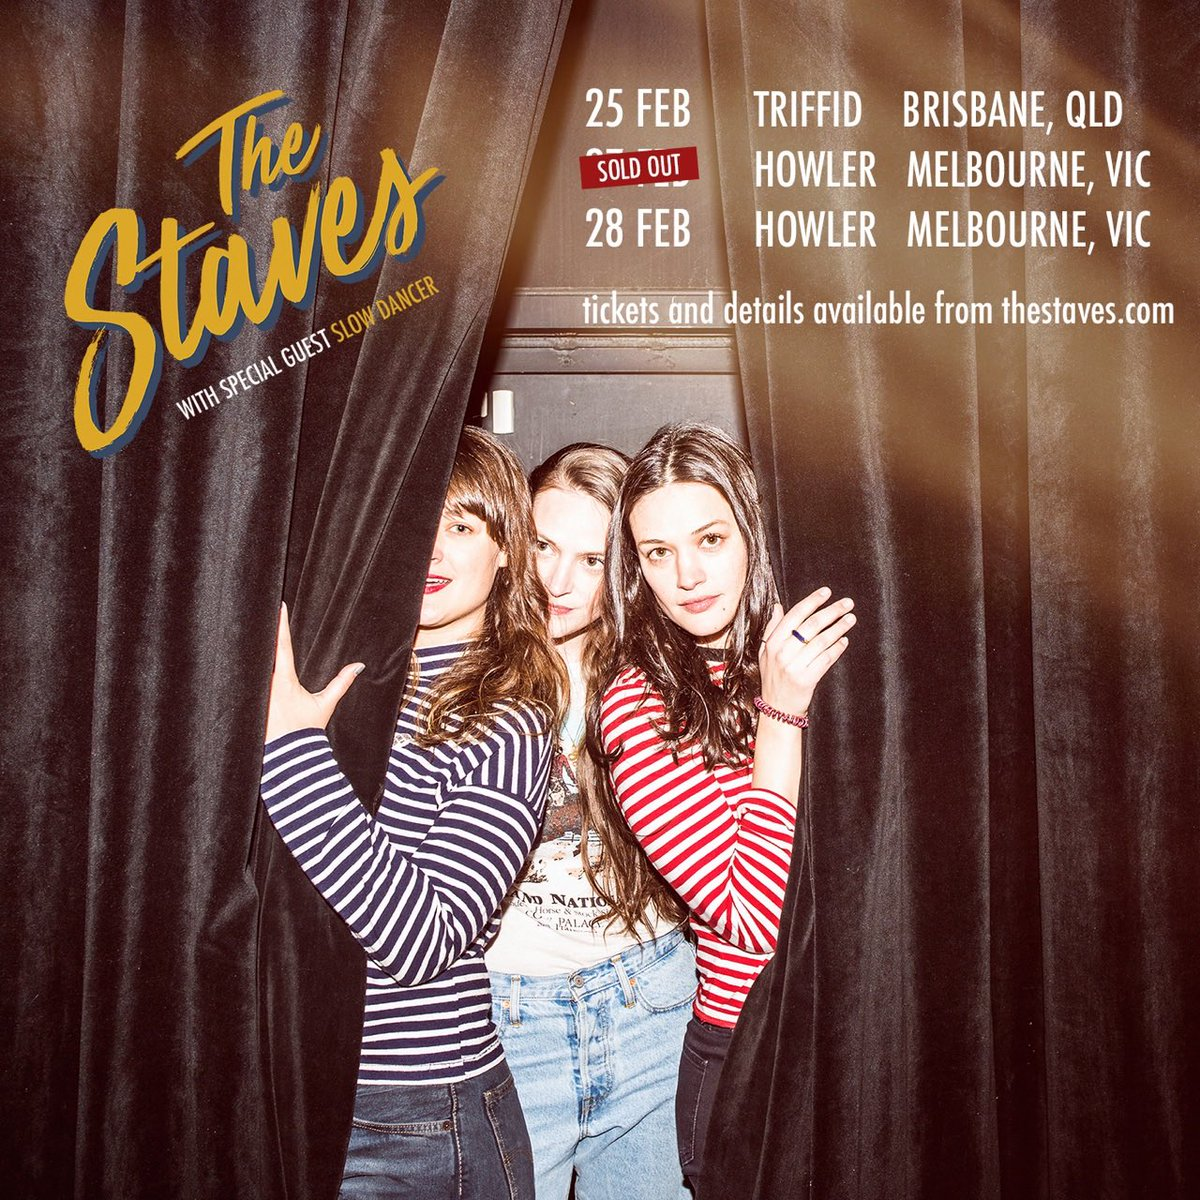 Jessica, Camilla and Emily Staveley-Taylor, aka the Staves, worked.